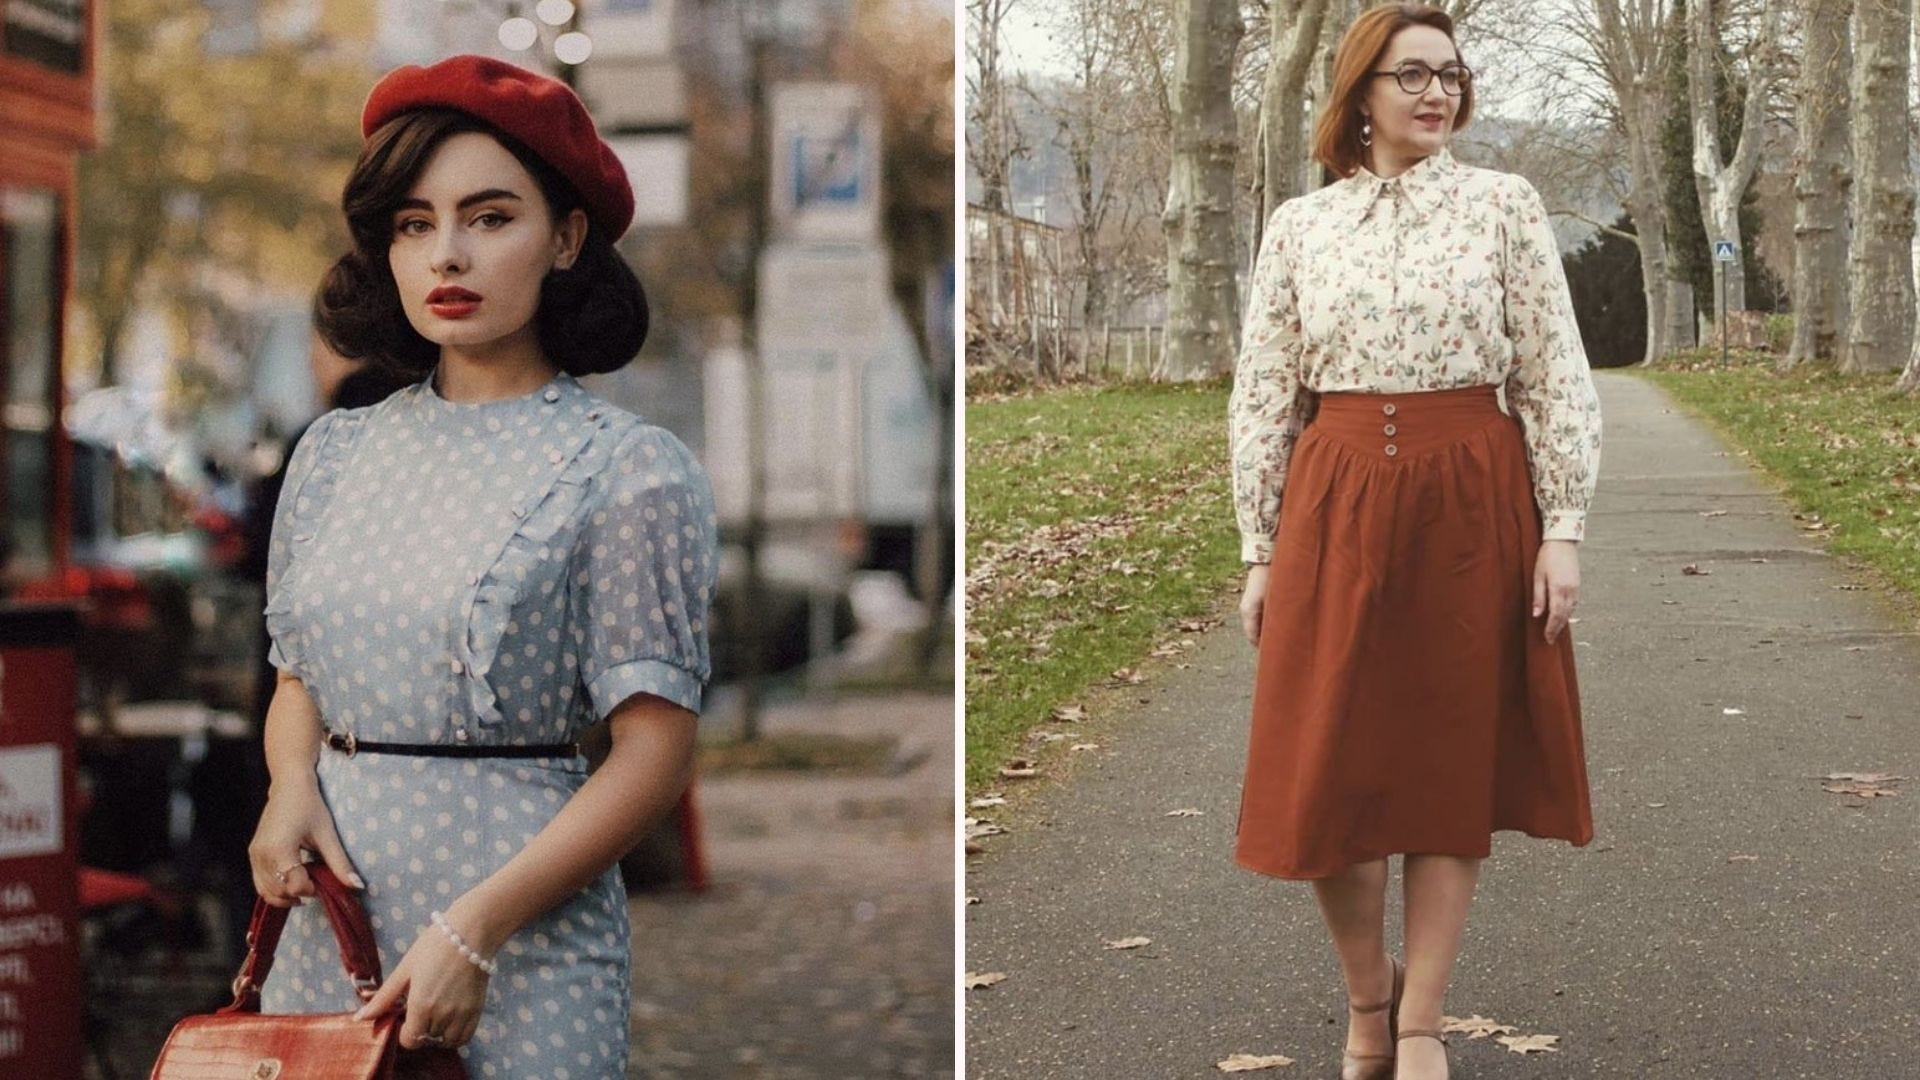 A woman in a blue polka dot dress and red beret; a woman in a rust-colored skirt and floral blouse